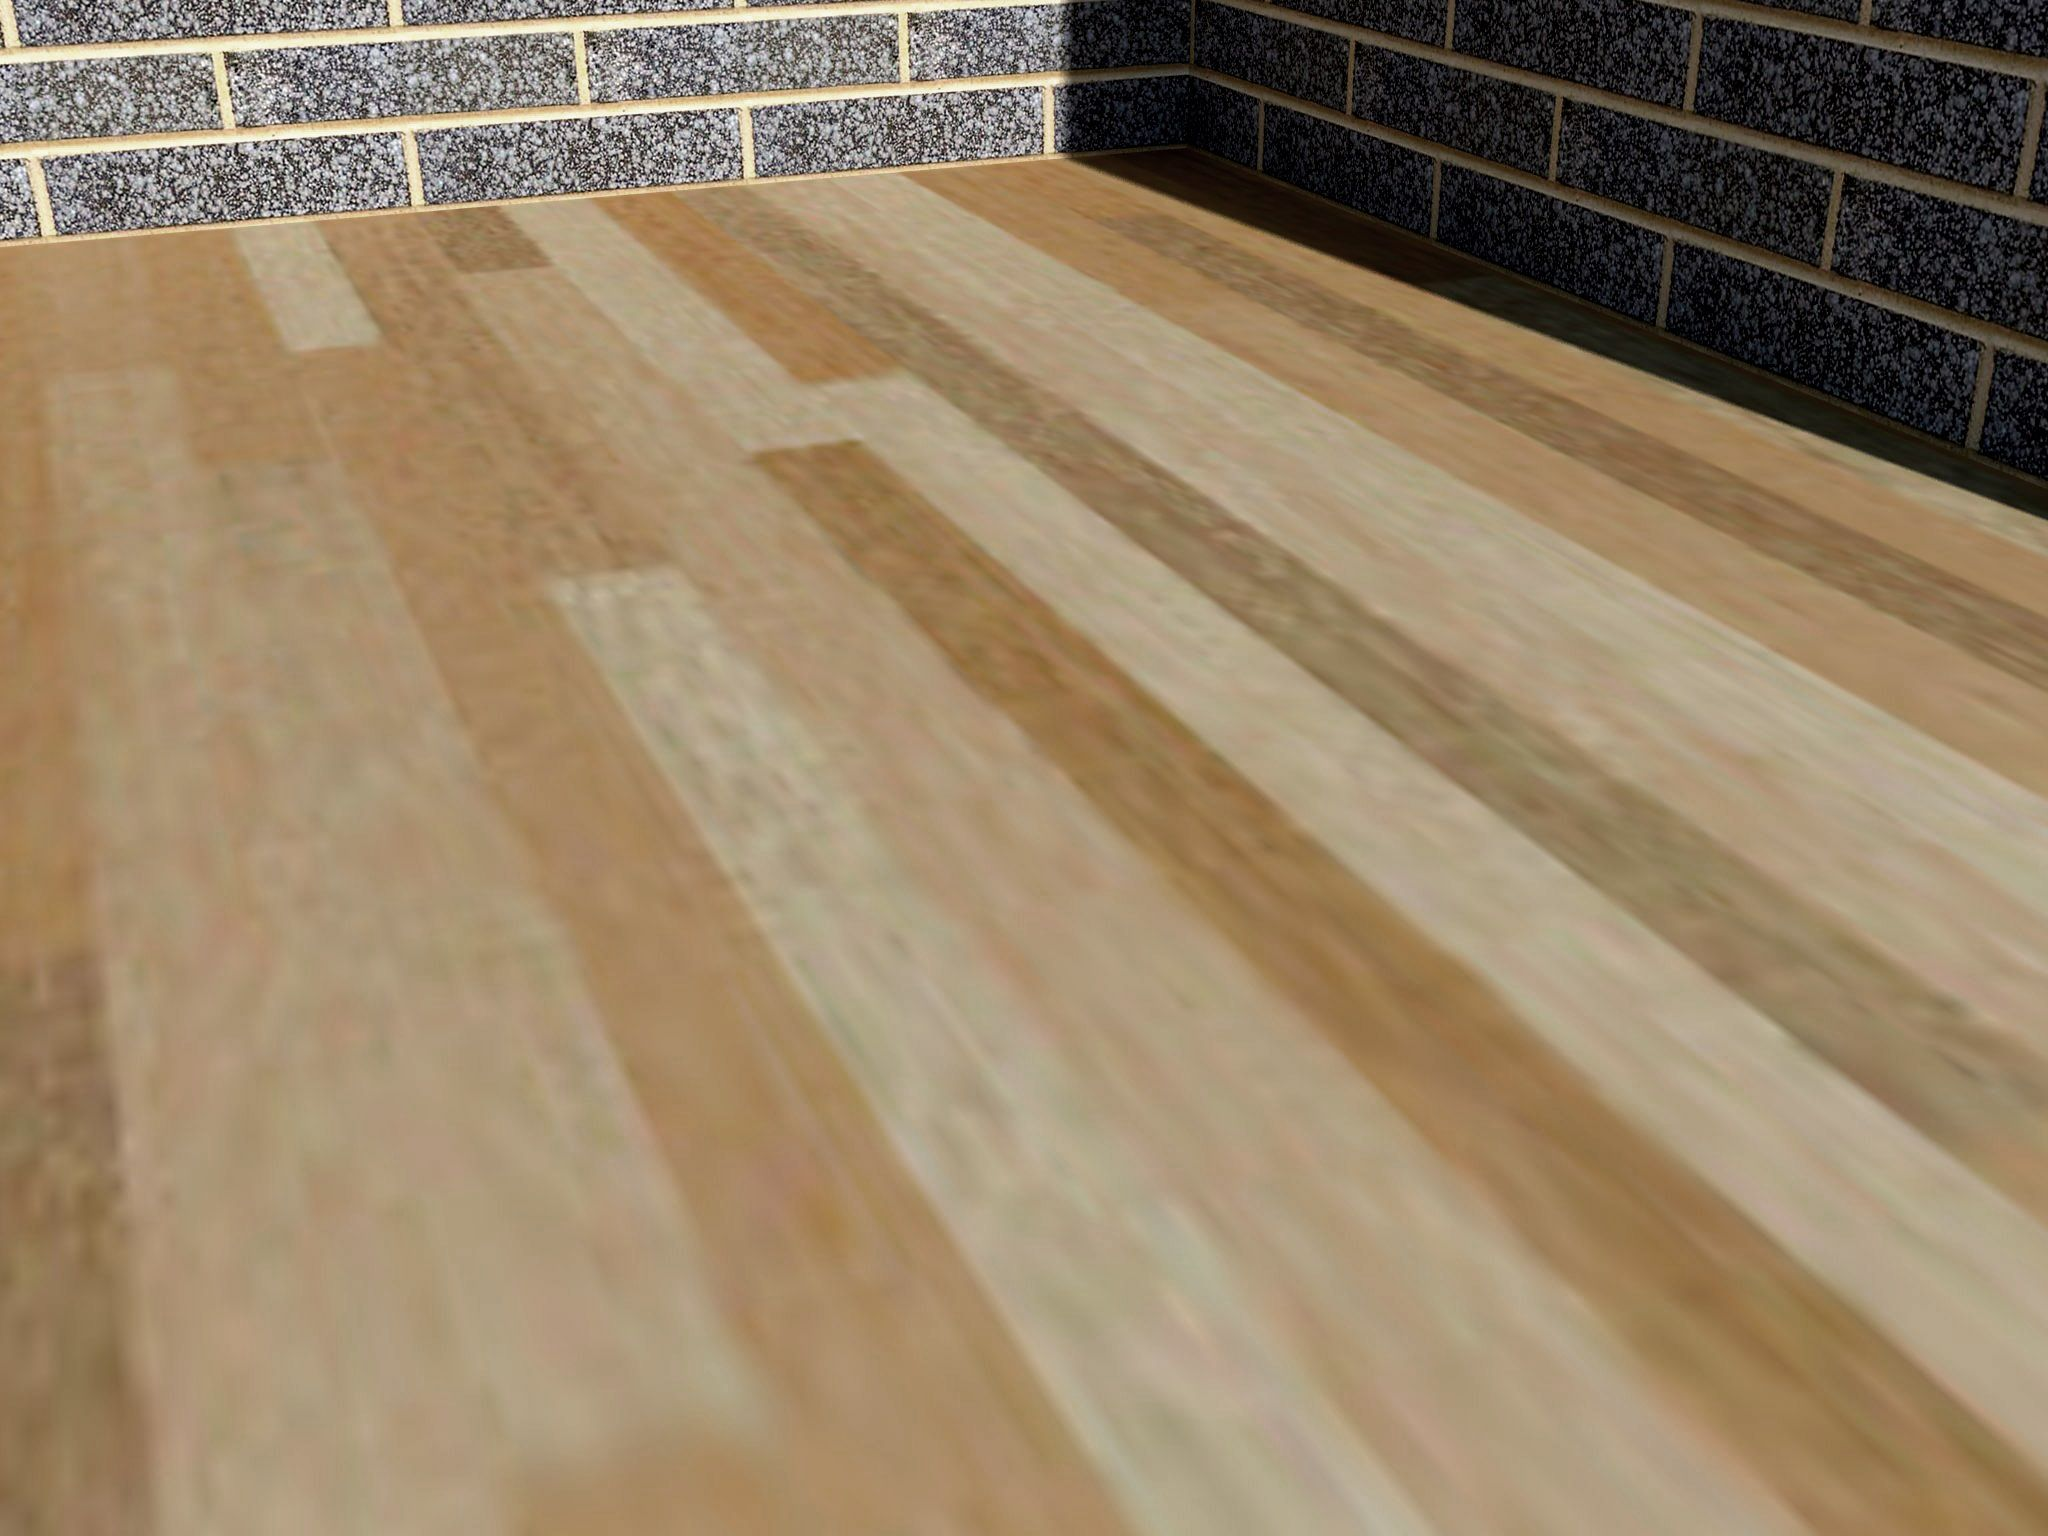 Get water stains off wood water stain on wood remove